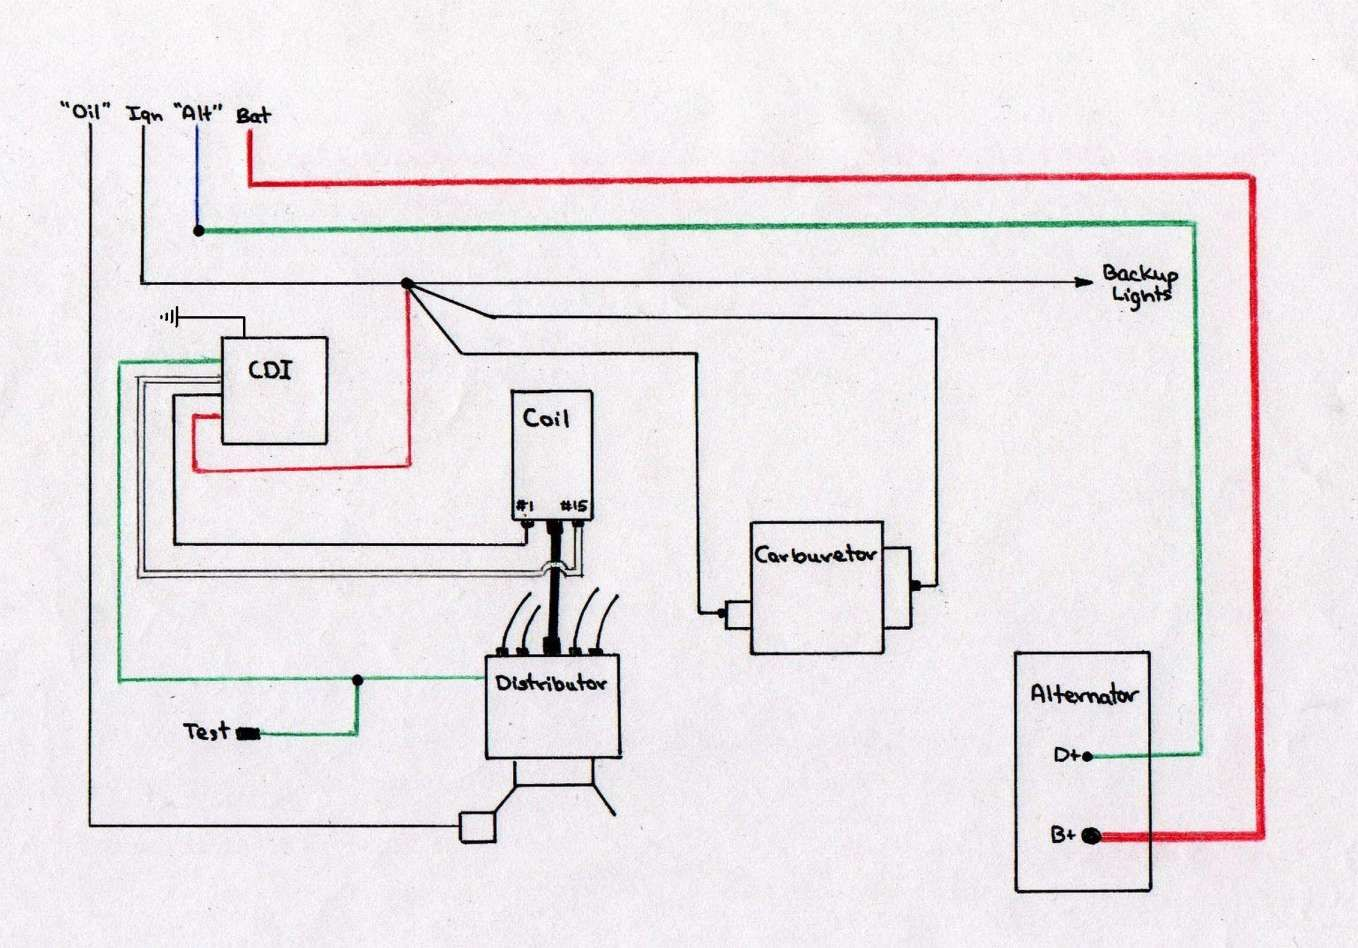 Schematic Diagram Of Motorcycle Cdi And Cdi Ignition